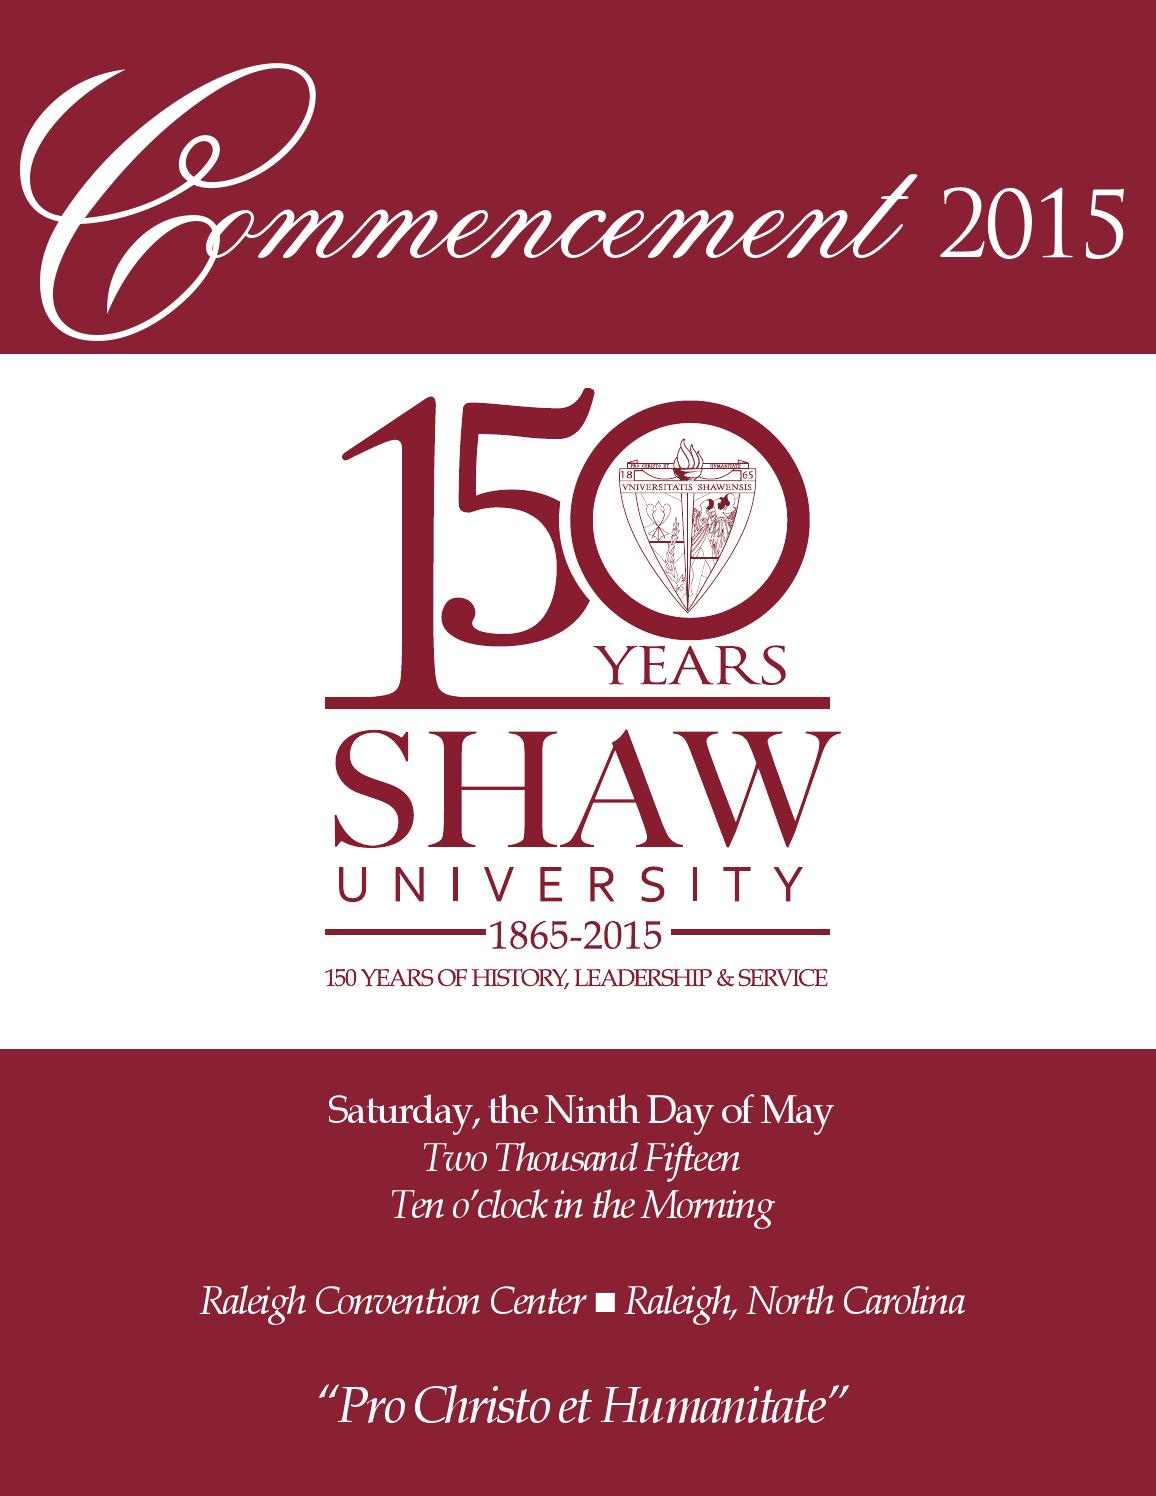 Shaw University Commencement 2015 By Shaw University Issuu Primary geographic assignments are covered by the admission staff but the vice president's trips have included parent presentations, application workshops, admitted student and alumni receptions, guidance counselor events, and conferences in nearly every state and several. shaw university commencement 2015 by